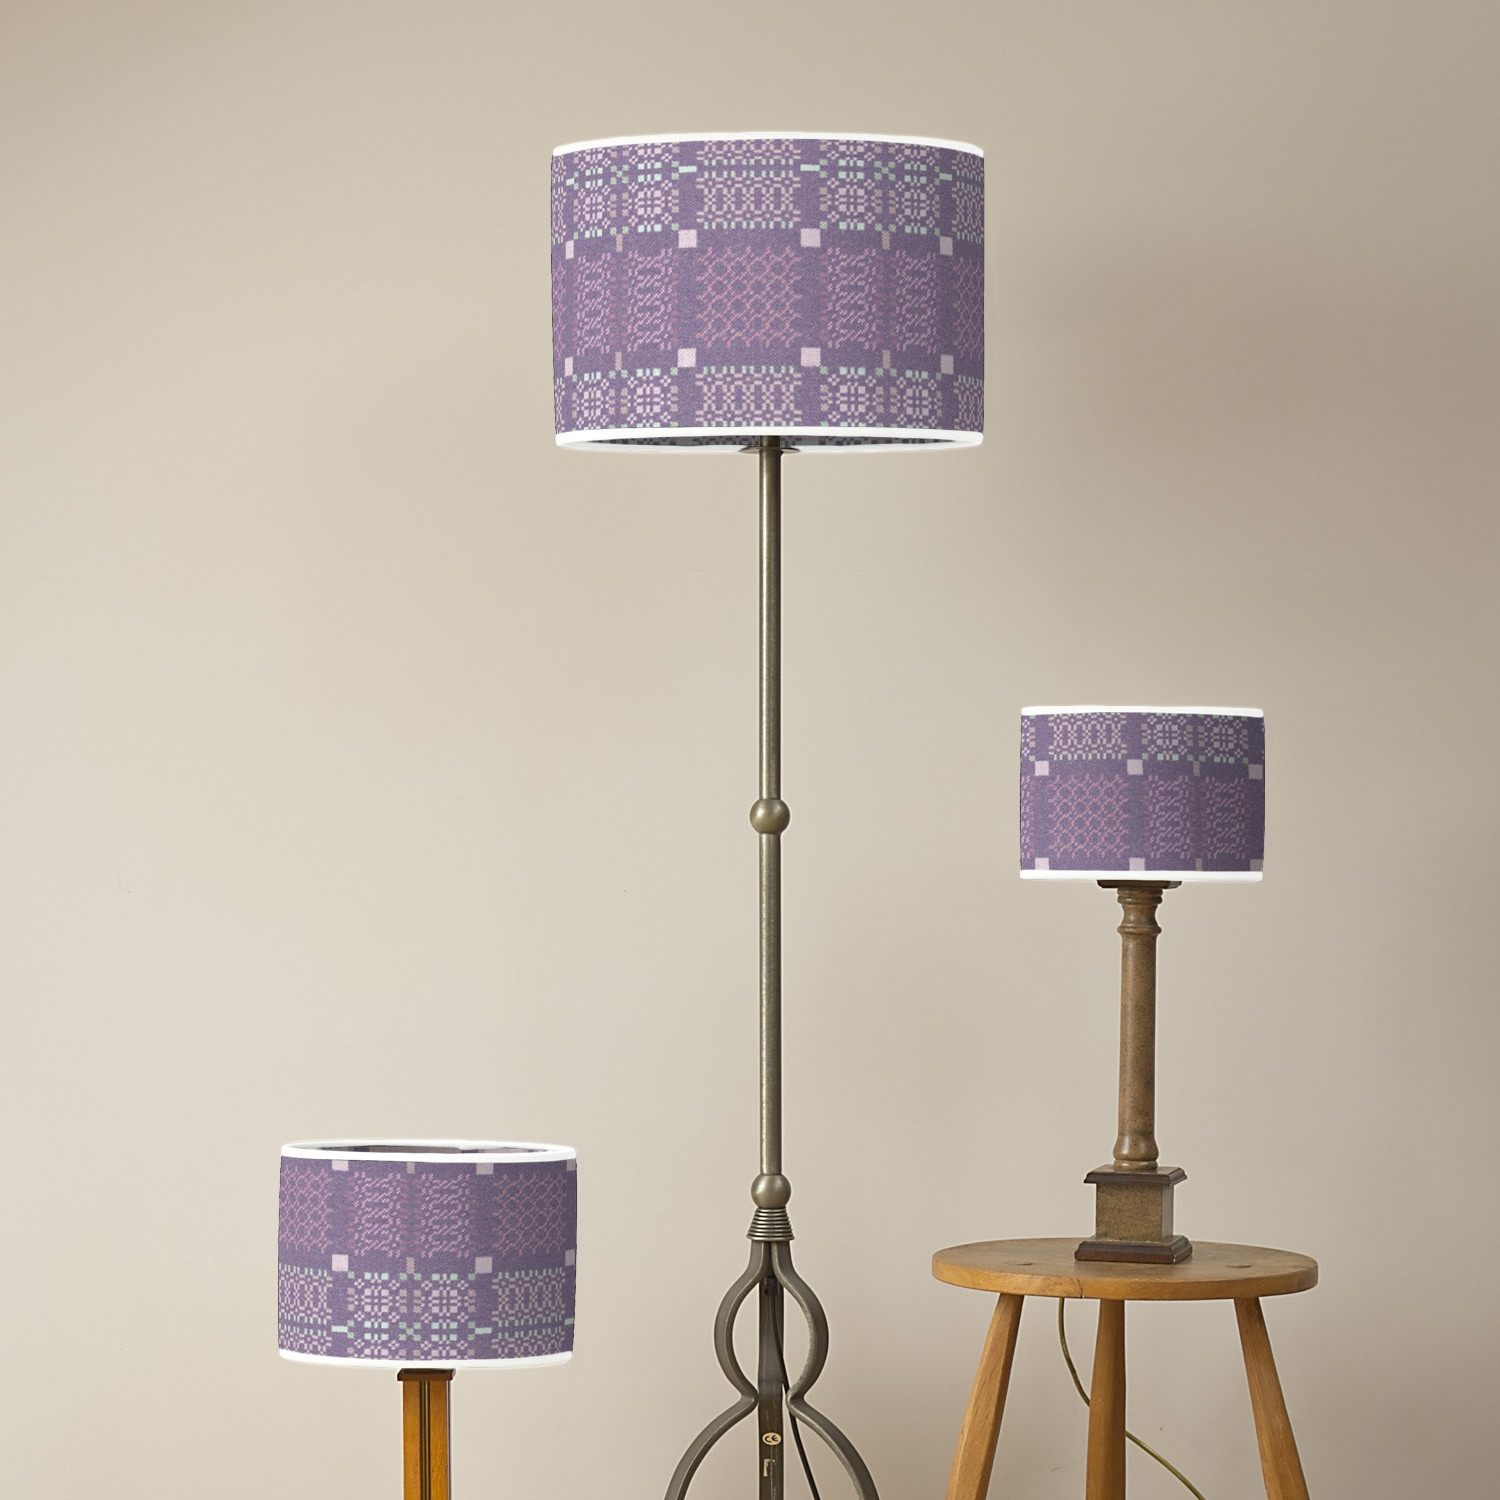 Knot Garden lilac oval lampshades